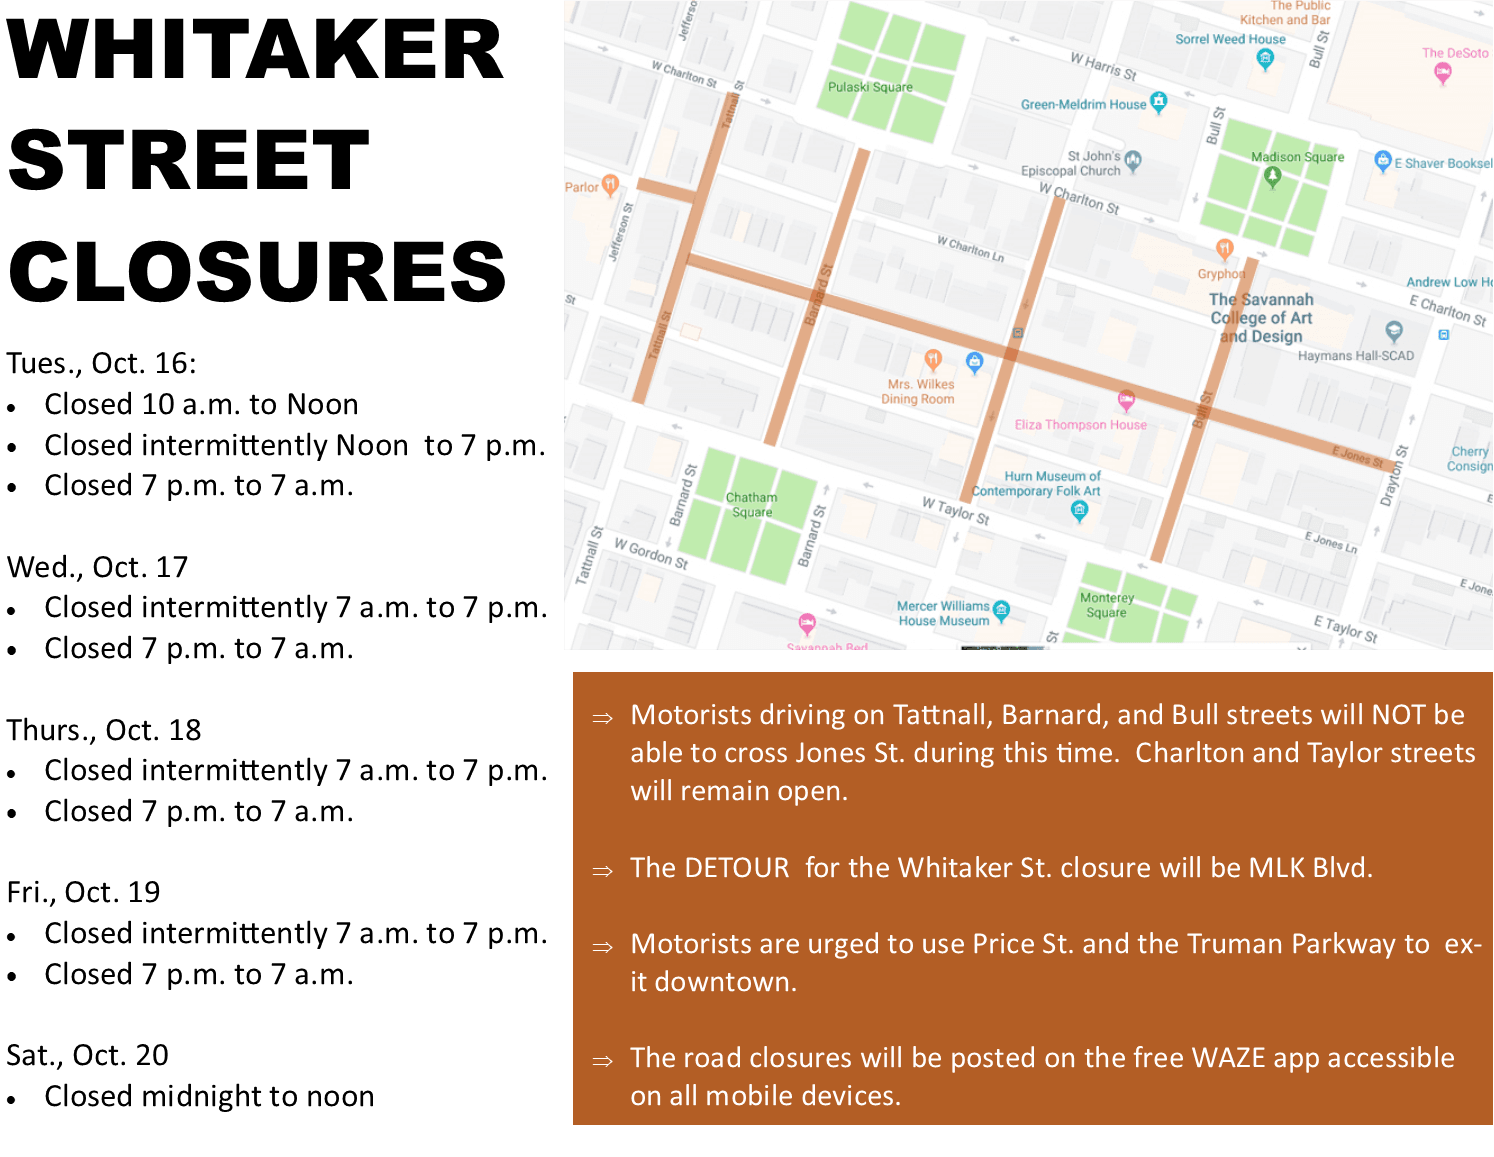 whitaker closures